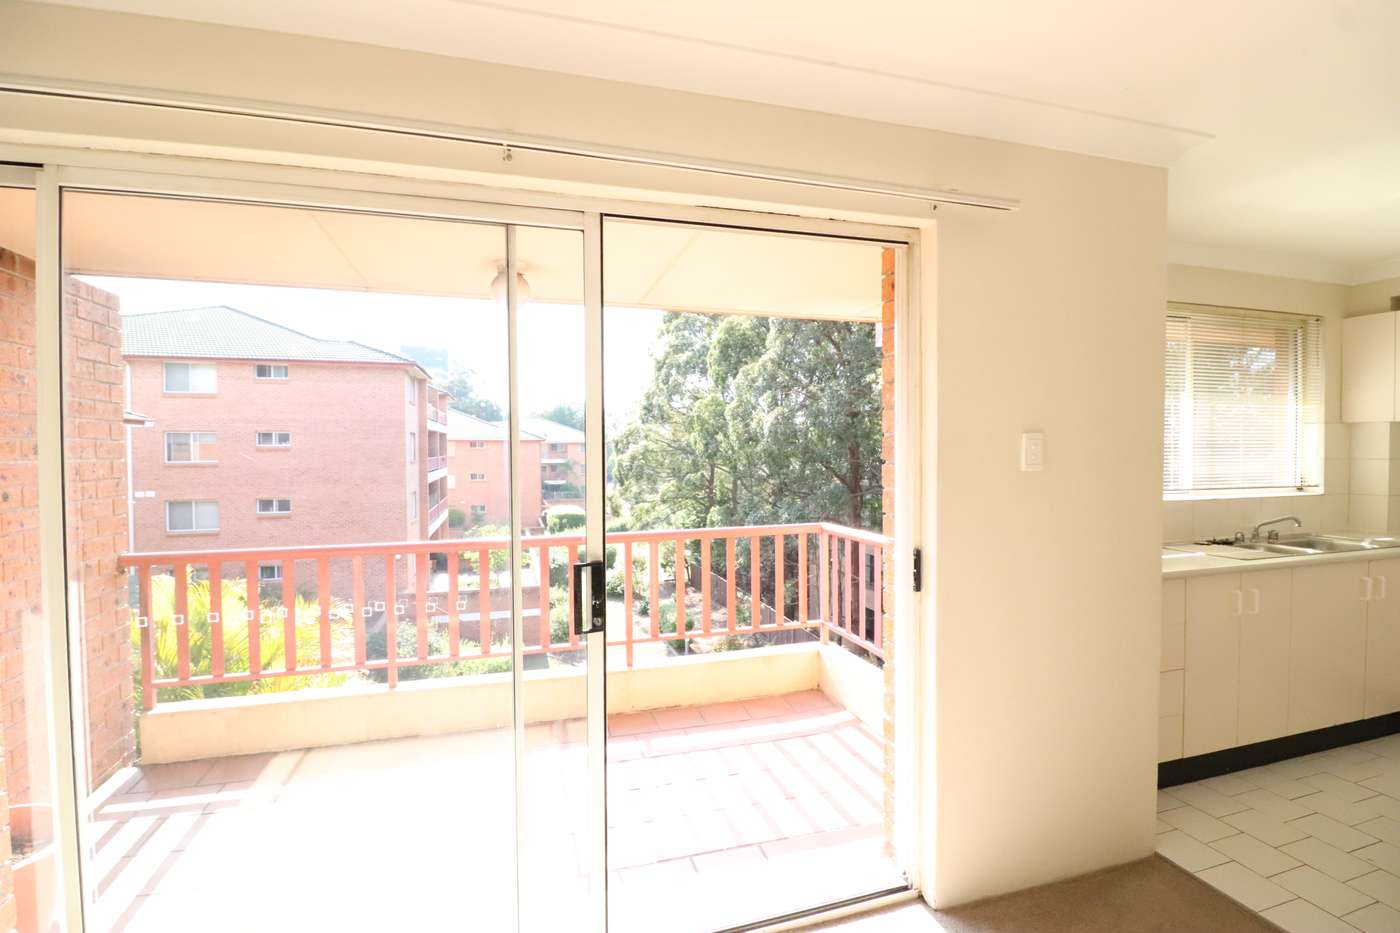 Main view of Homely unit listing, 12/53B Auburn St, Sutherland, NSW 2232